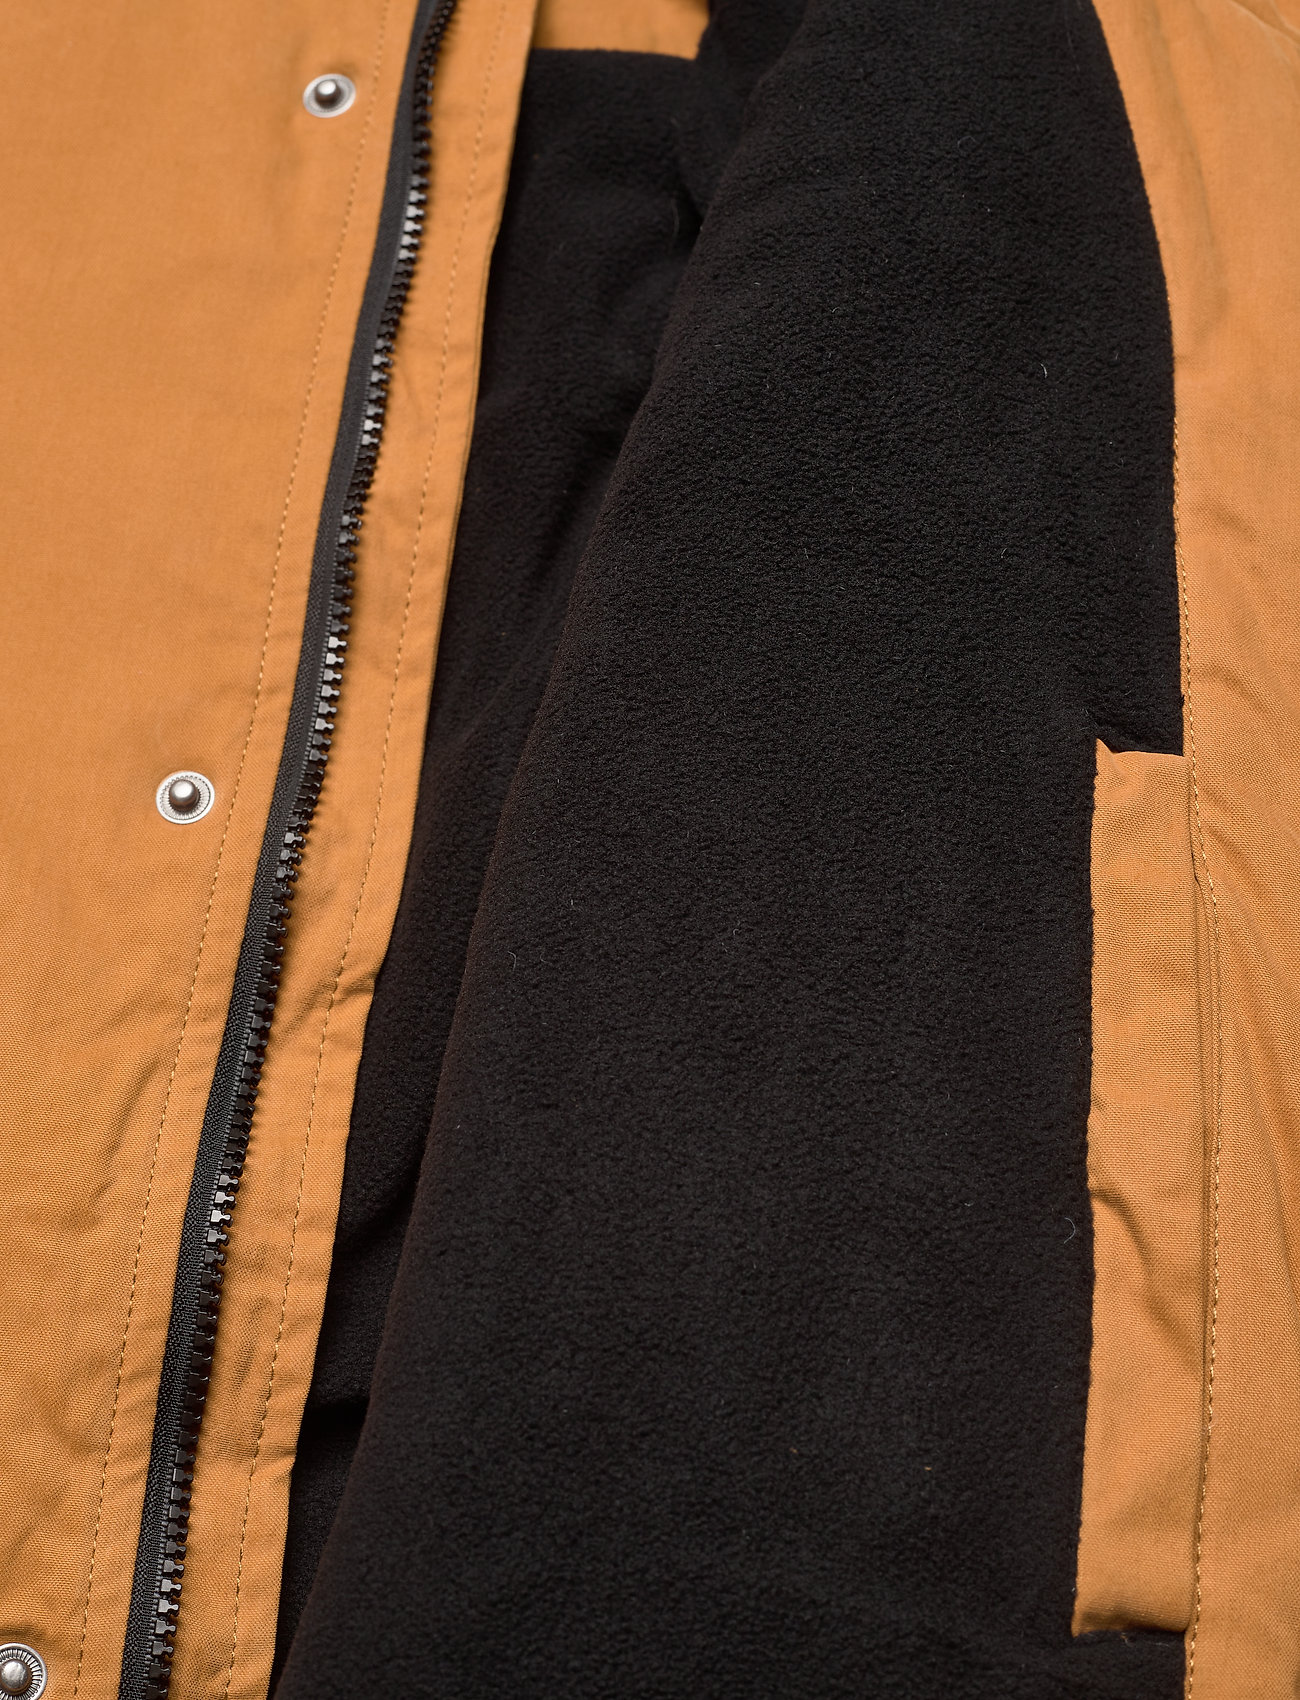 Lyle & Scott Winter Weight Microfleece Lined Parka - Jakker og frakker CARAMEL - Menn Klær